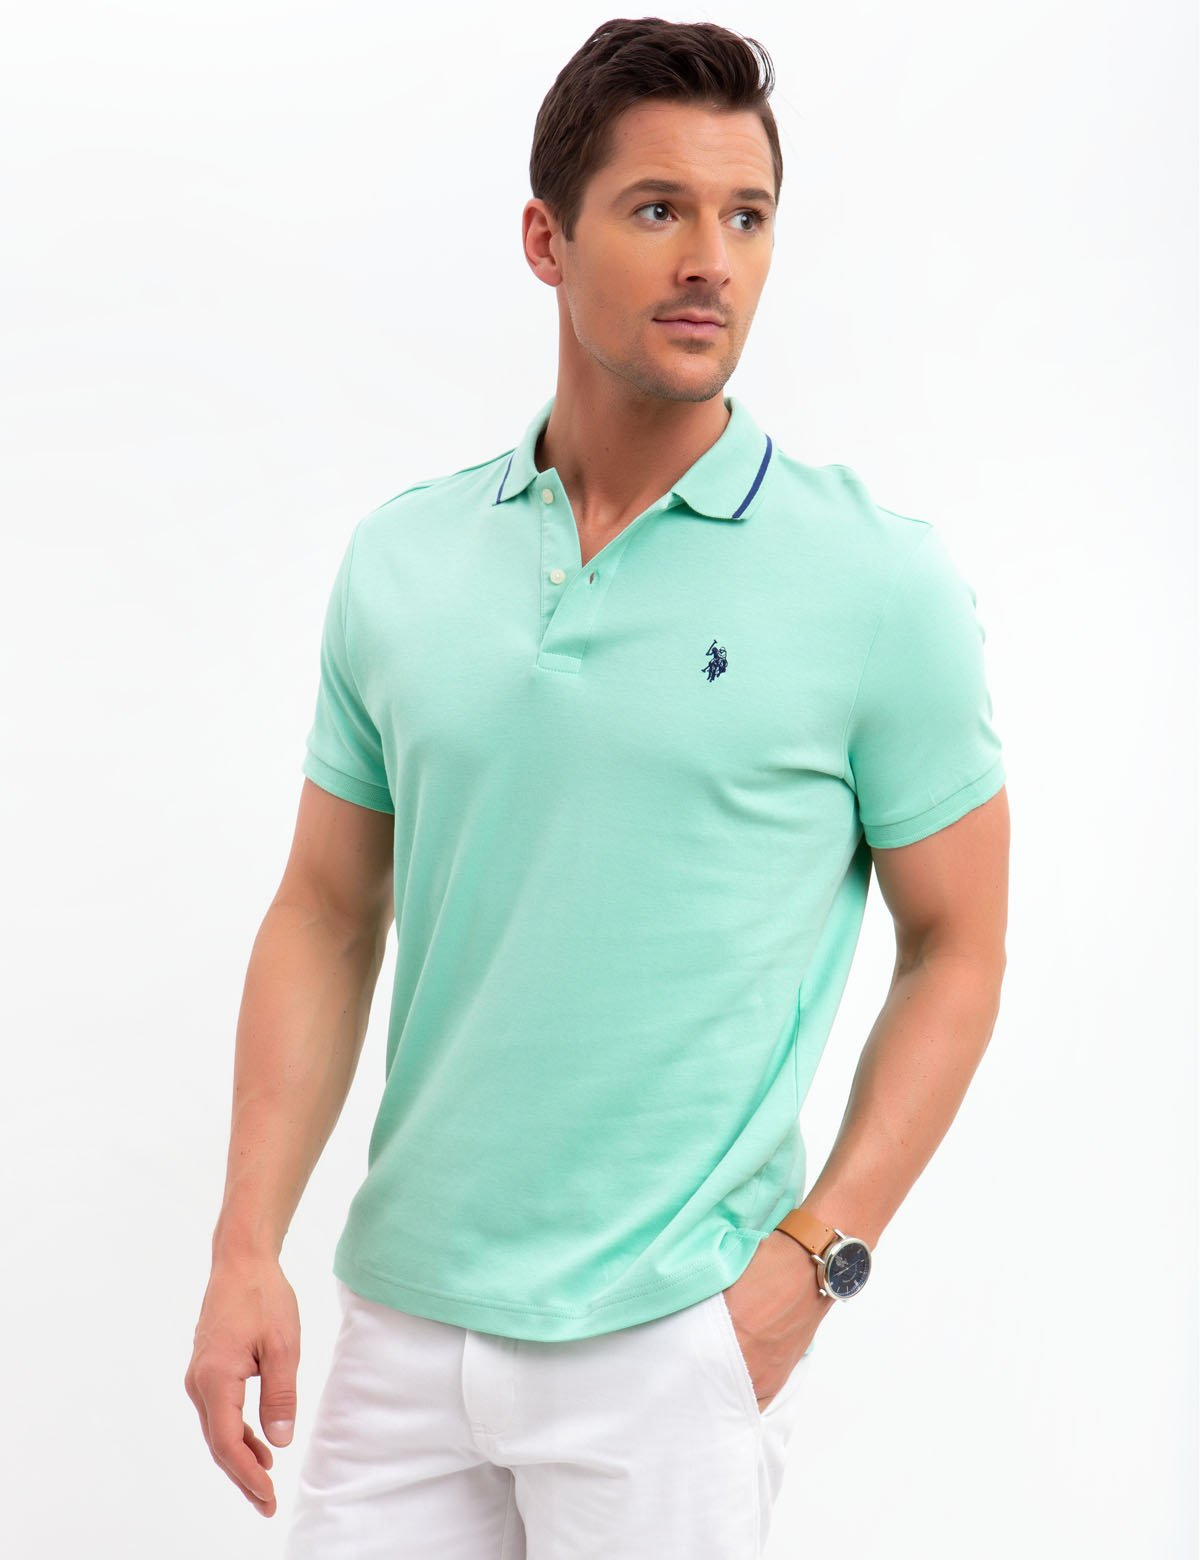 SLIM FIT INTERLOCK POLO SHIRT